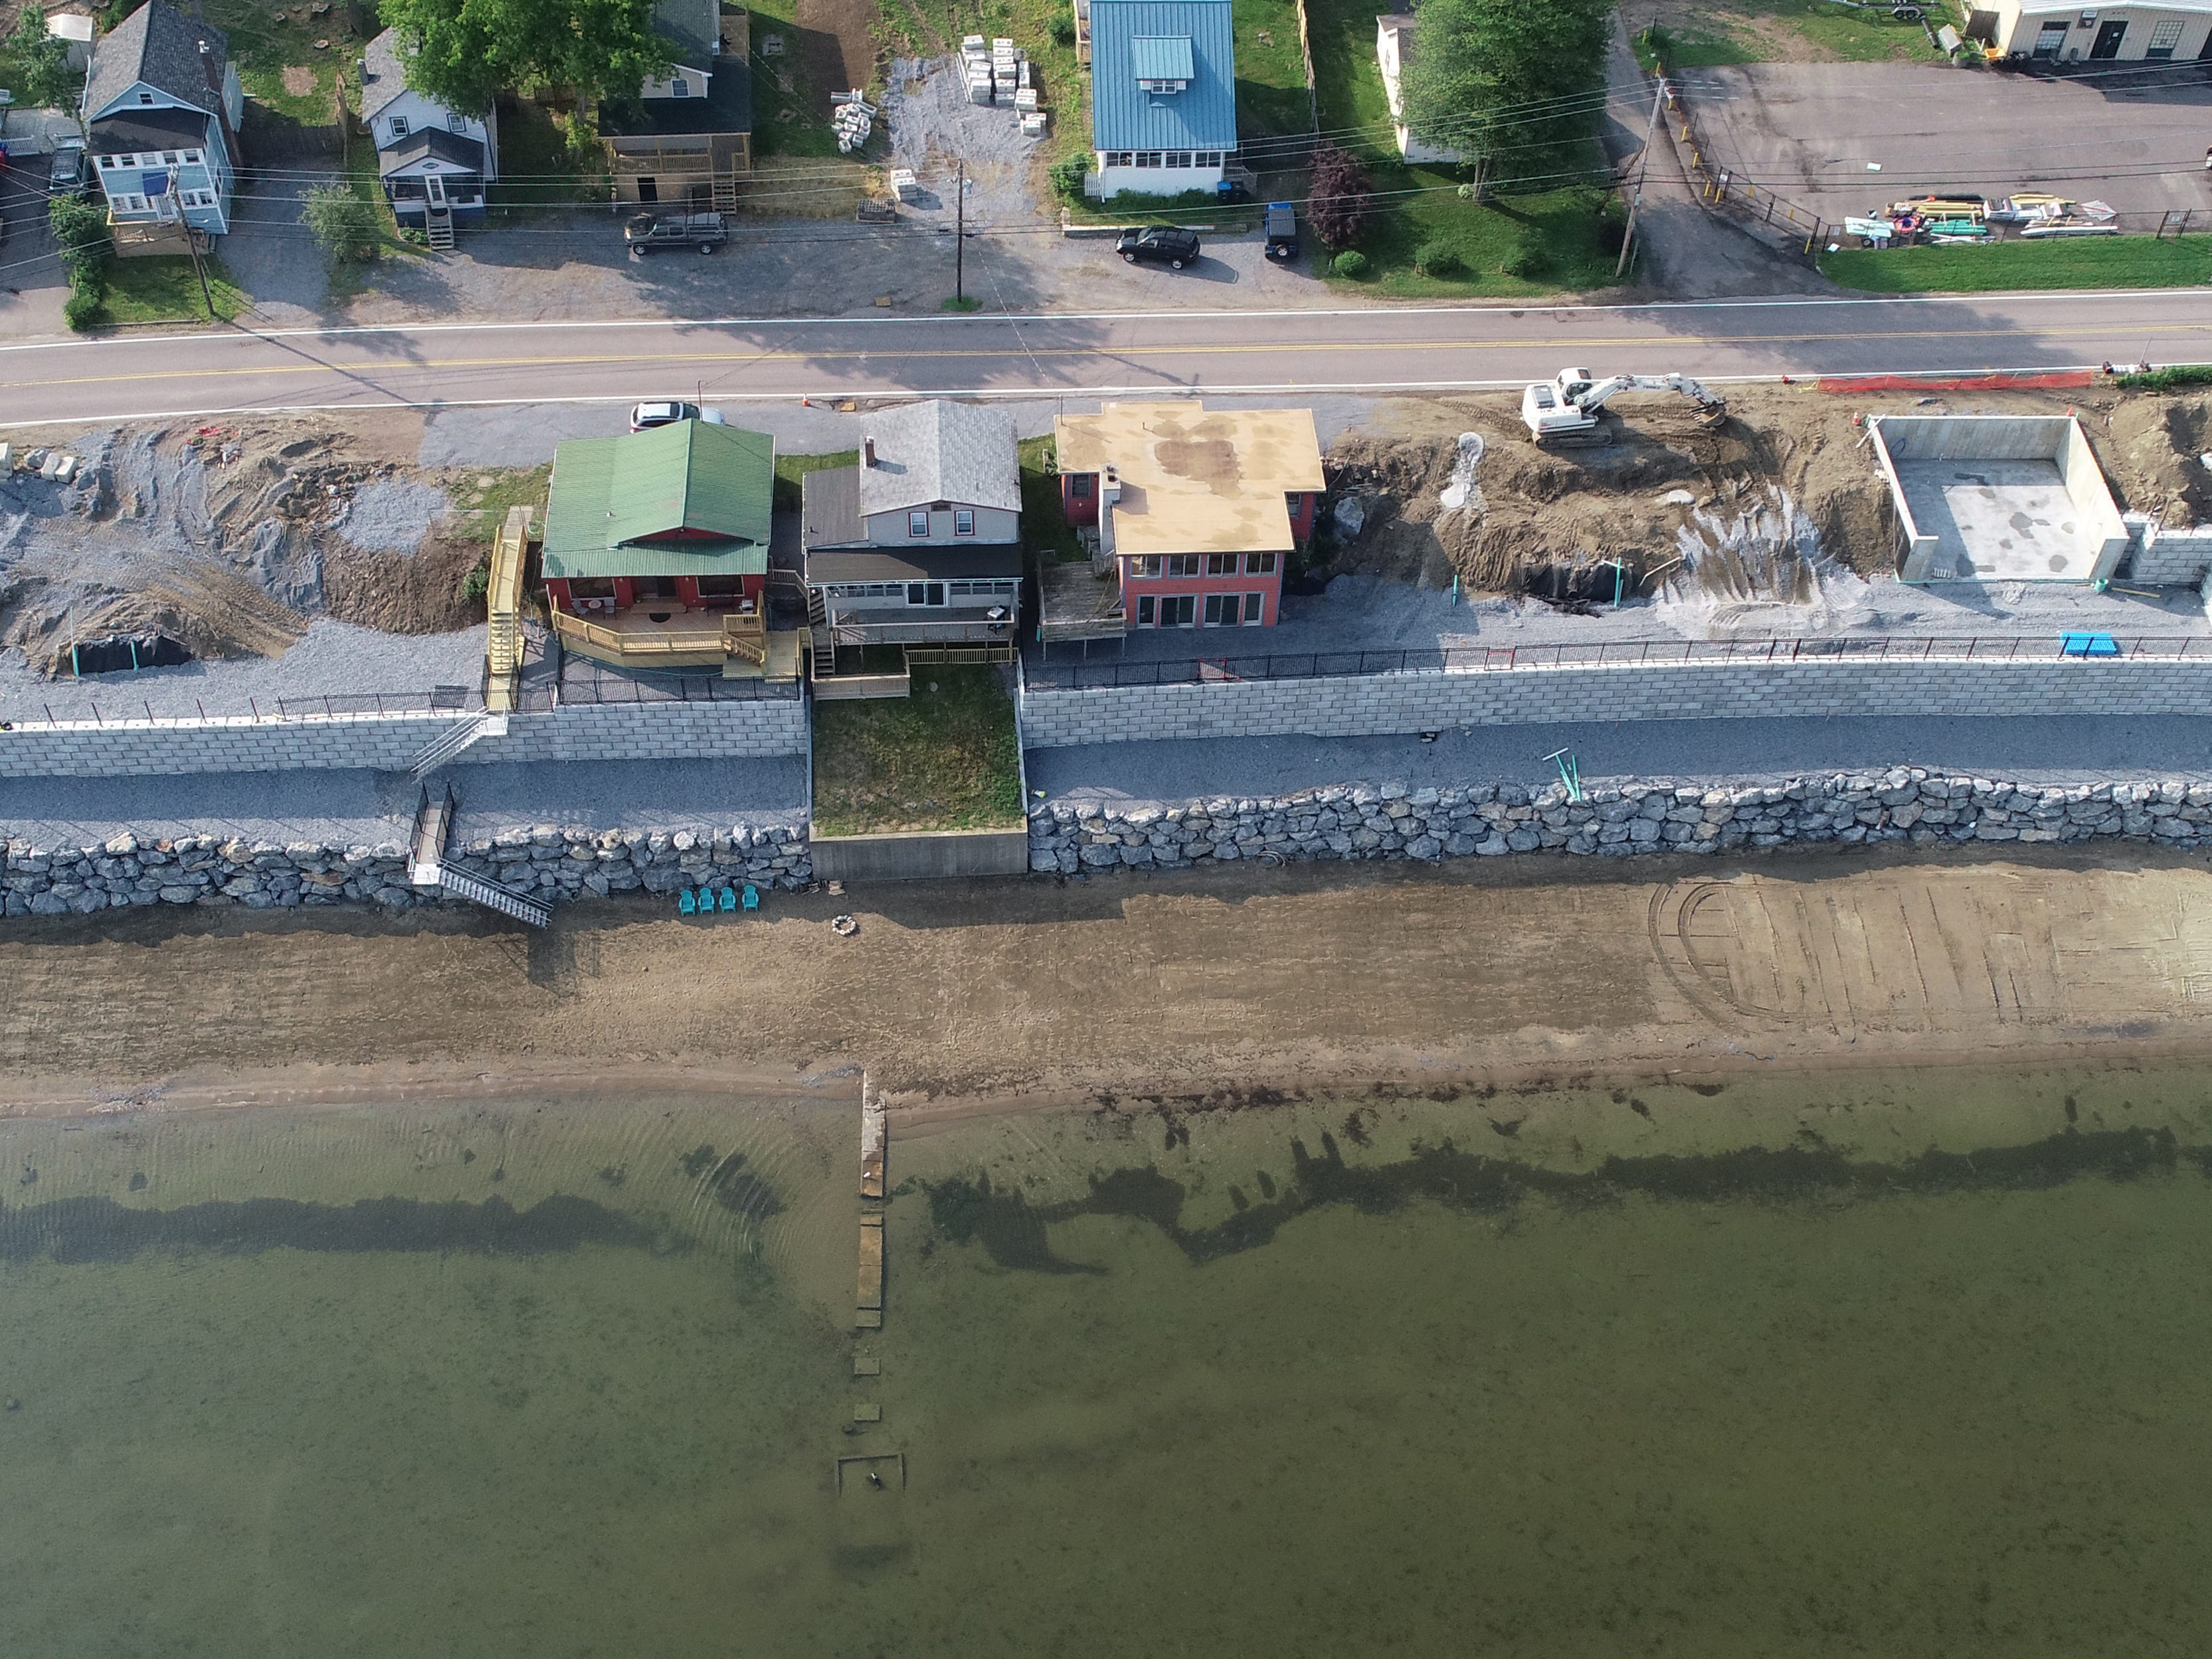 A new stone seawall and new homes are under construction on East Lakeshore Drive in Colchester on July 1, 2018.